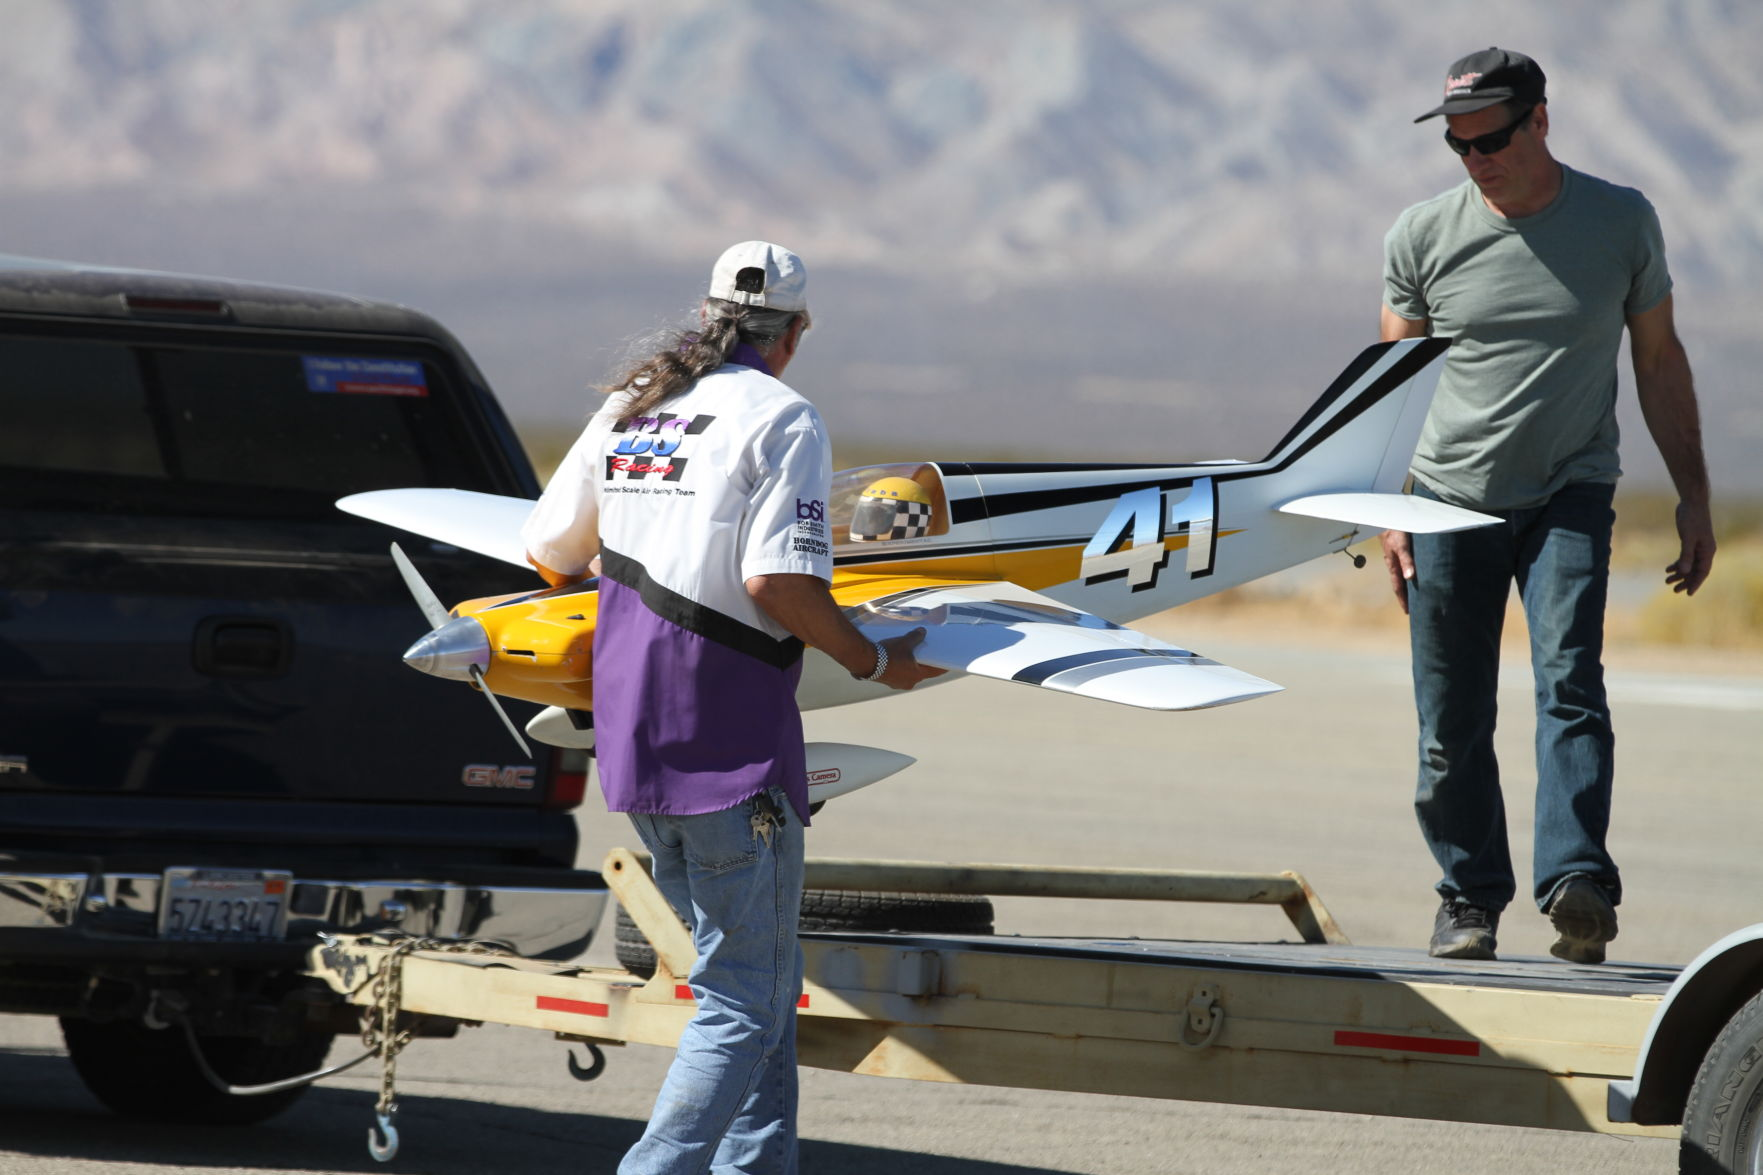 USRA RC Race of Champions comes to Cal City Airport